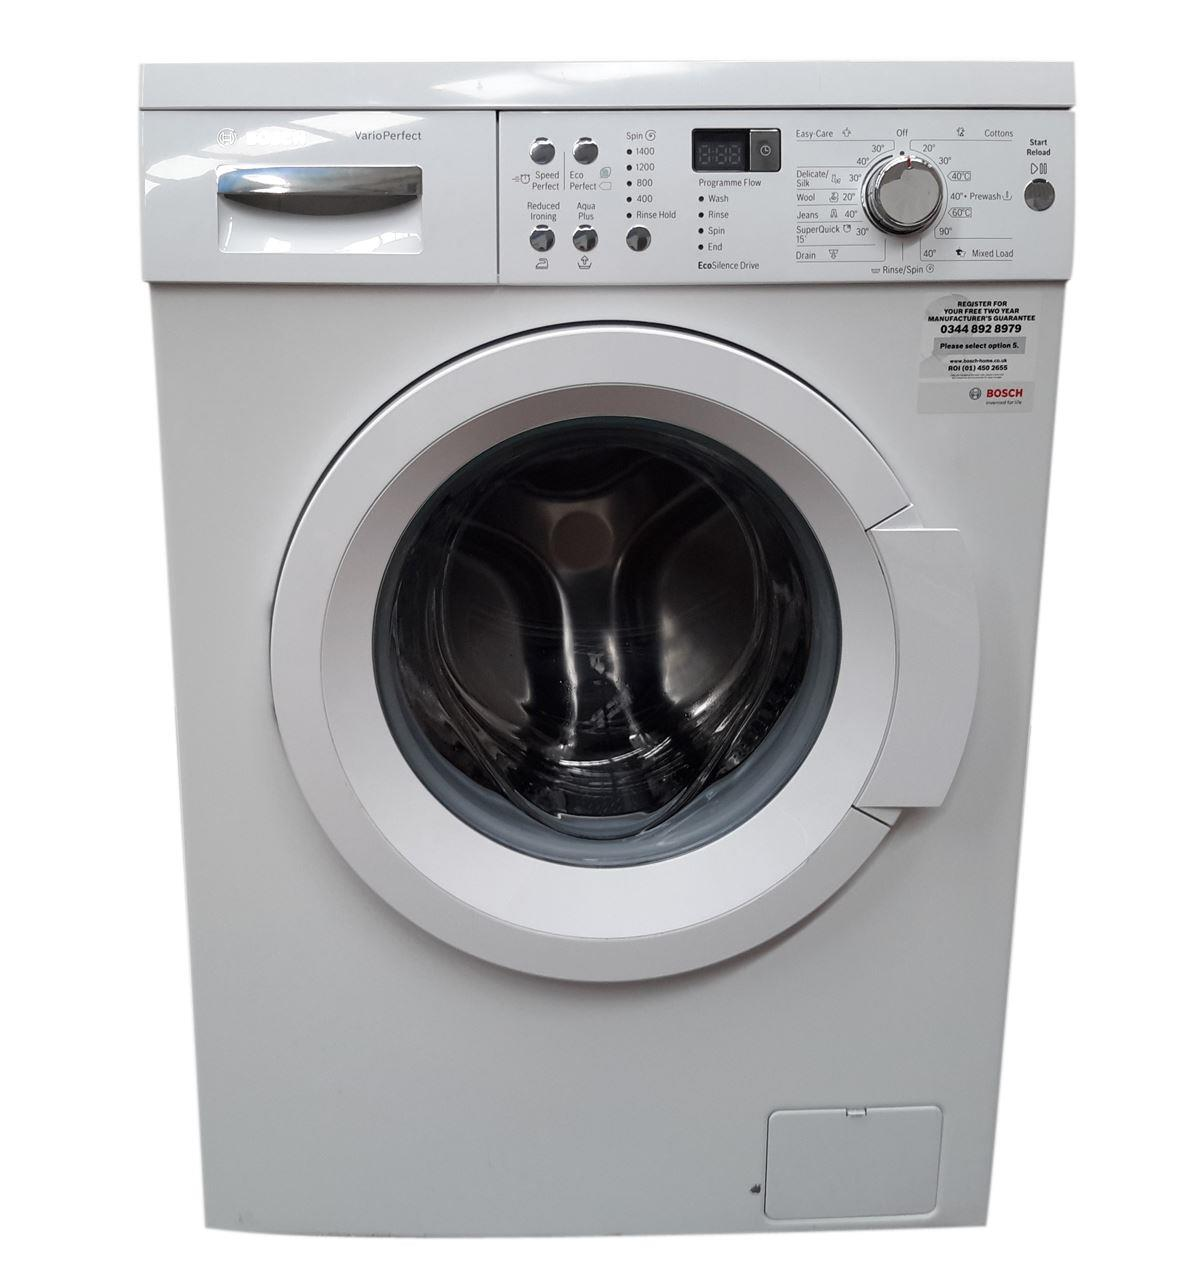 bosch serie 6 waq283s1gb 8kg washing machine white. Black Bedroom Furniture Sets. Home Design Ideas